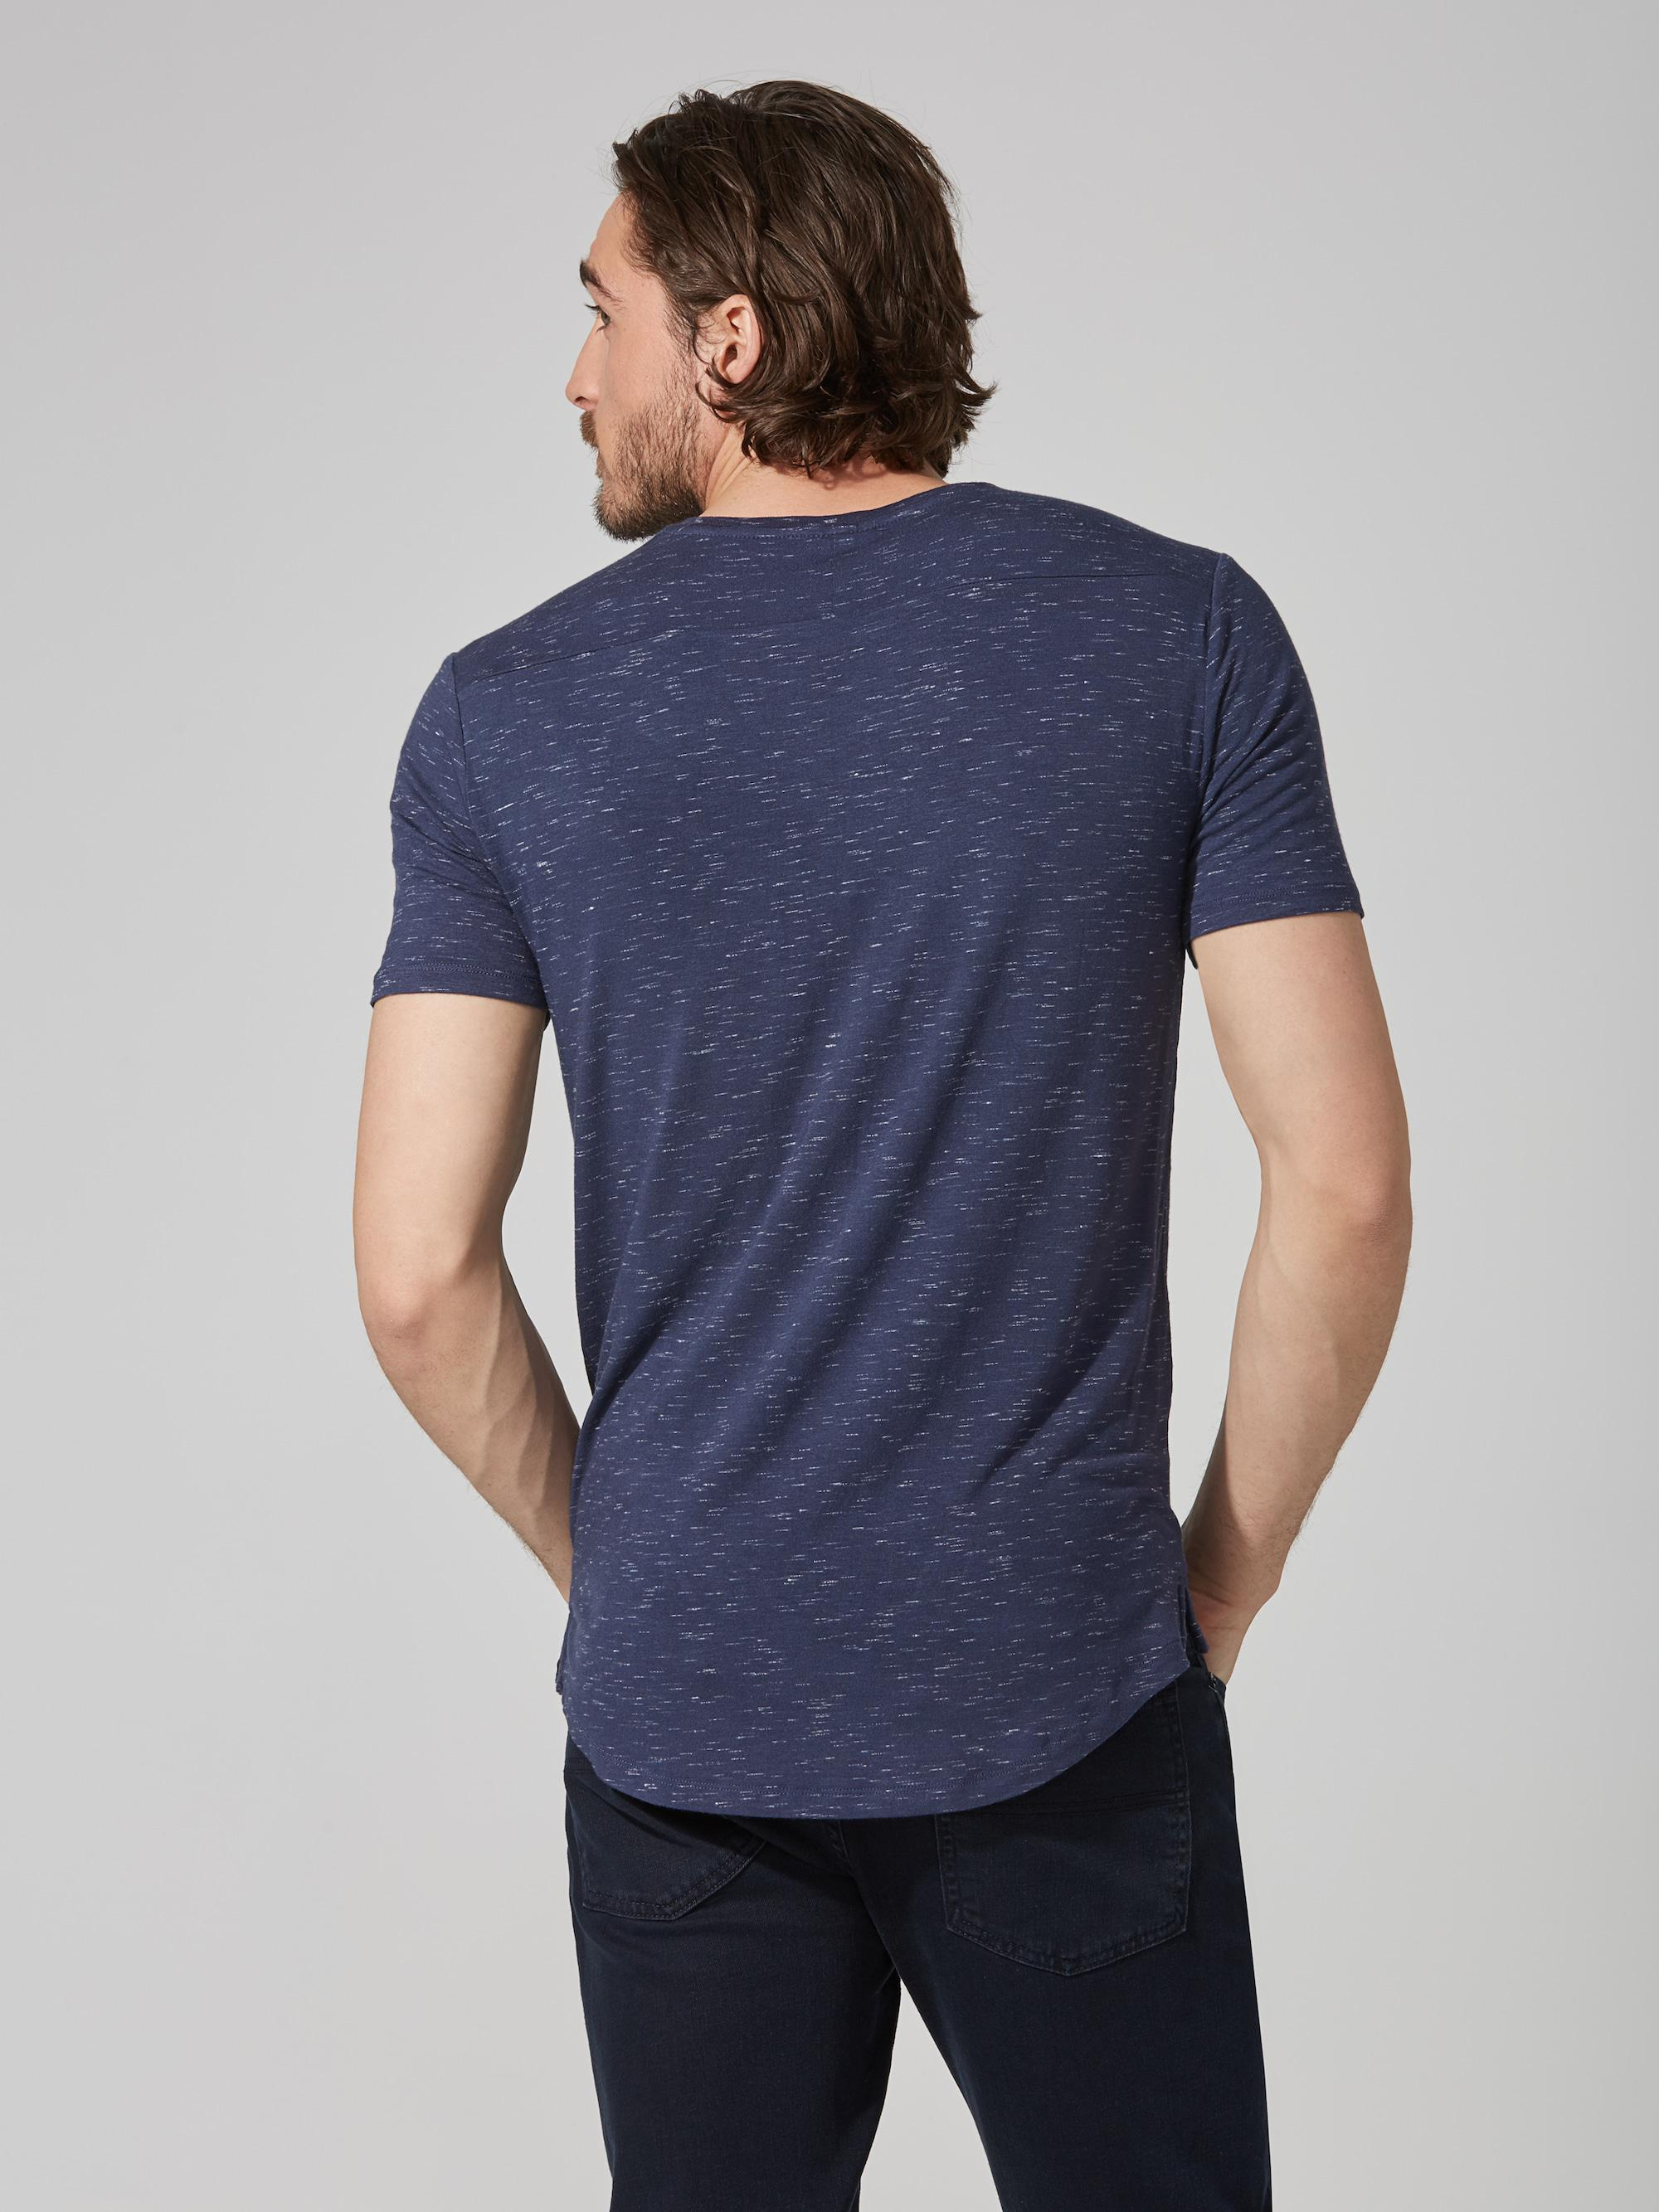 1d6e0d5e0a Lyst - Frank And Oak Loose Fit Jersey T-shirt In Blue Melange in ...